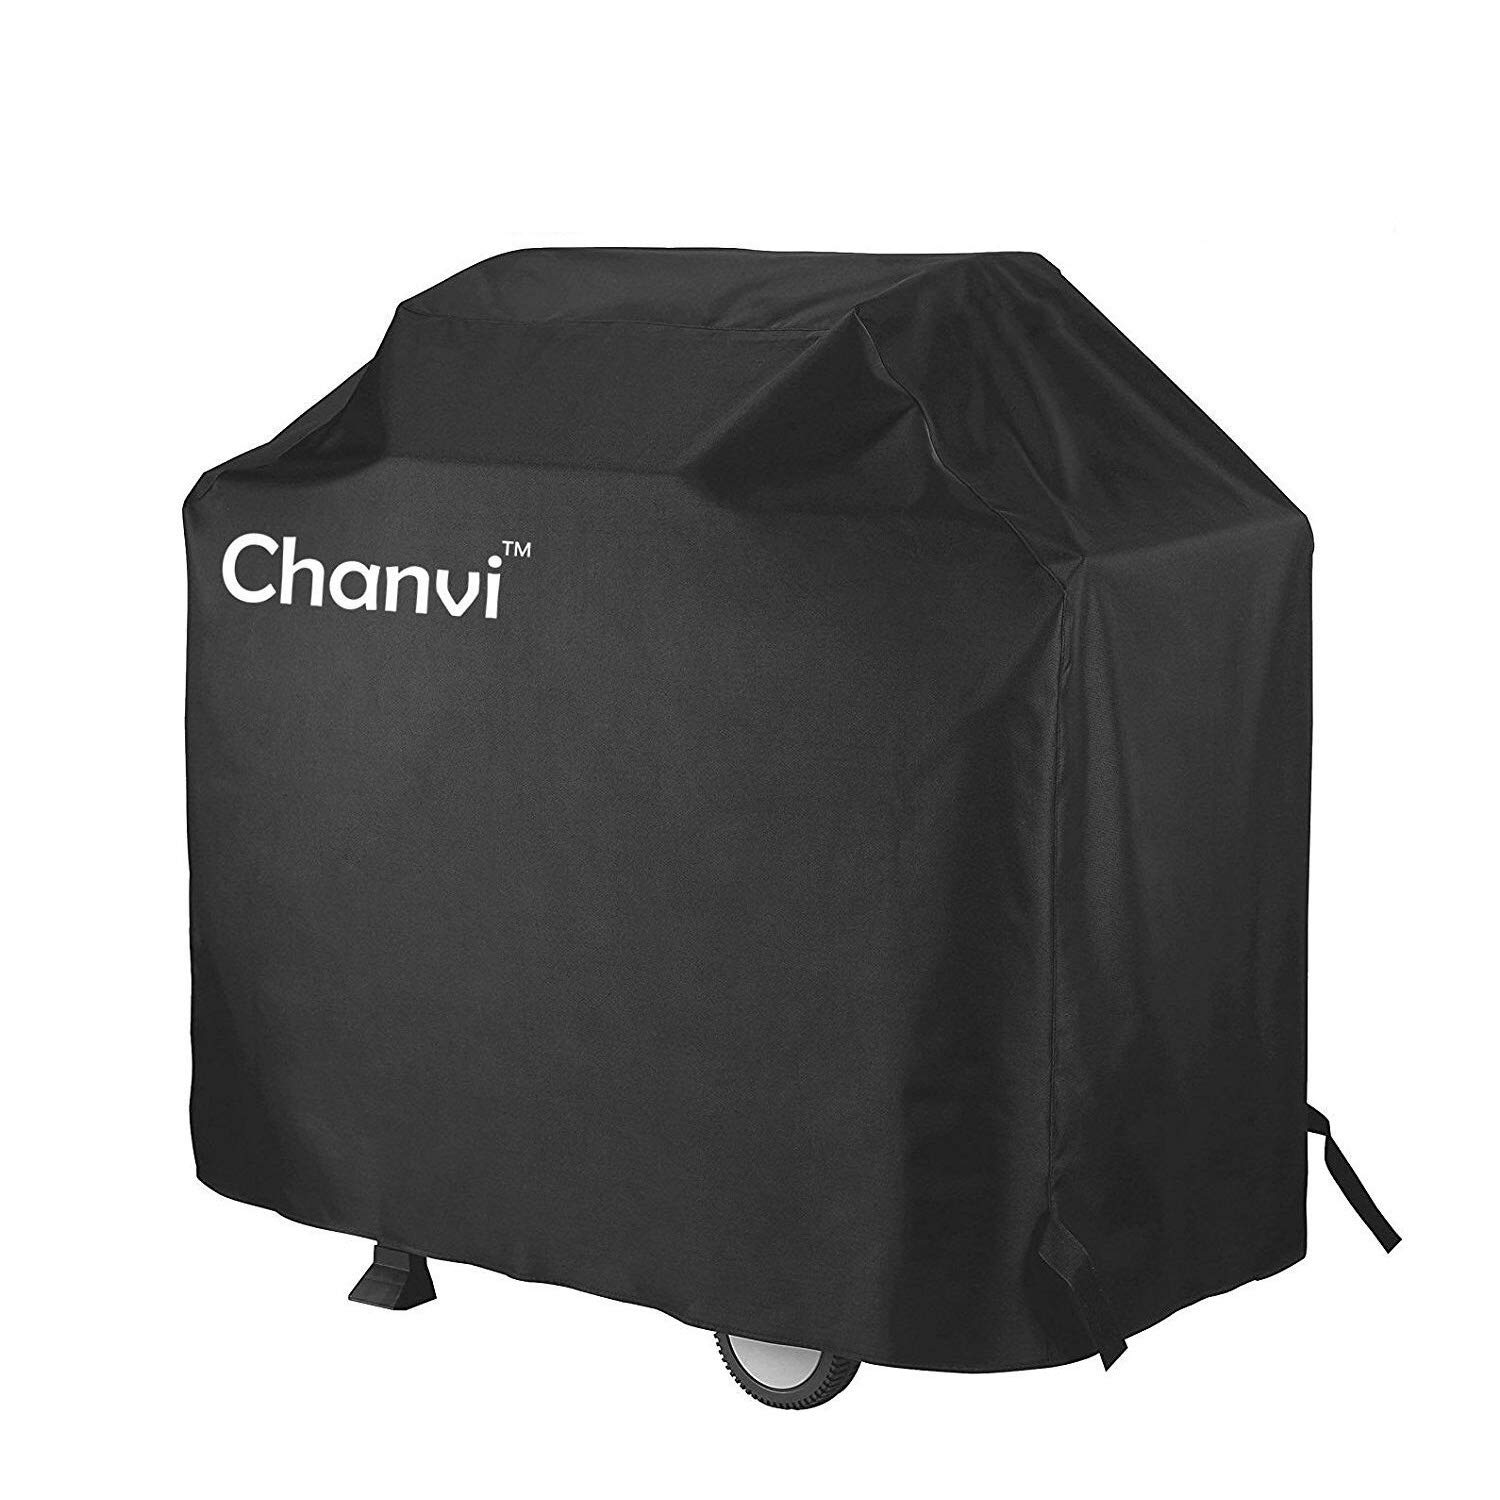 chanvi BBQ Cover Gas Grill Covers, 58-inch 600D Heavy Duty Waterproof -Duty Waterproof Patio Outdoor Black CANVAS Barbecue